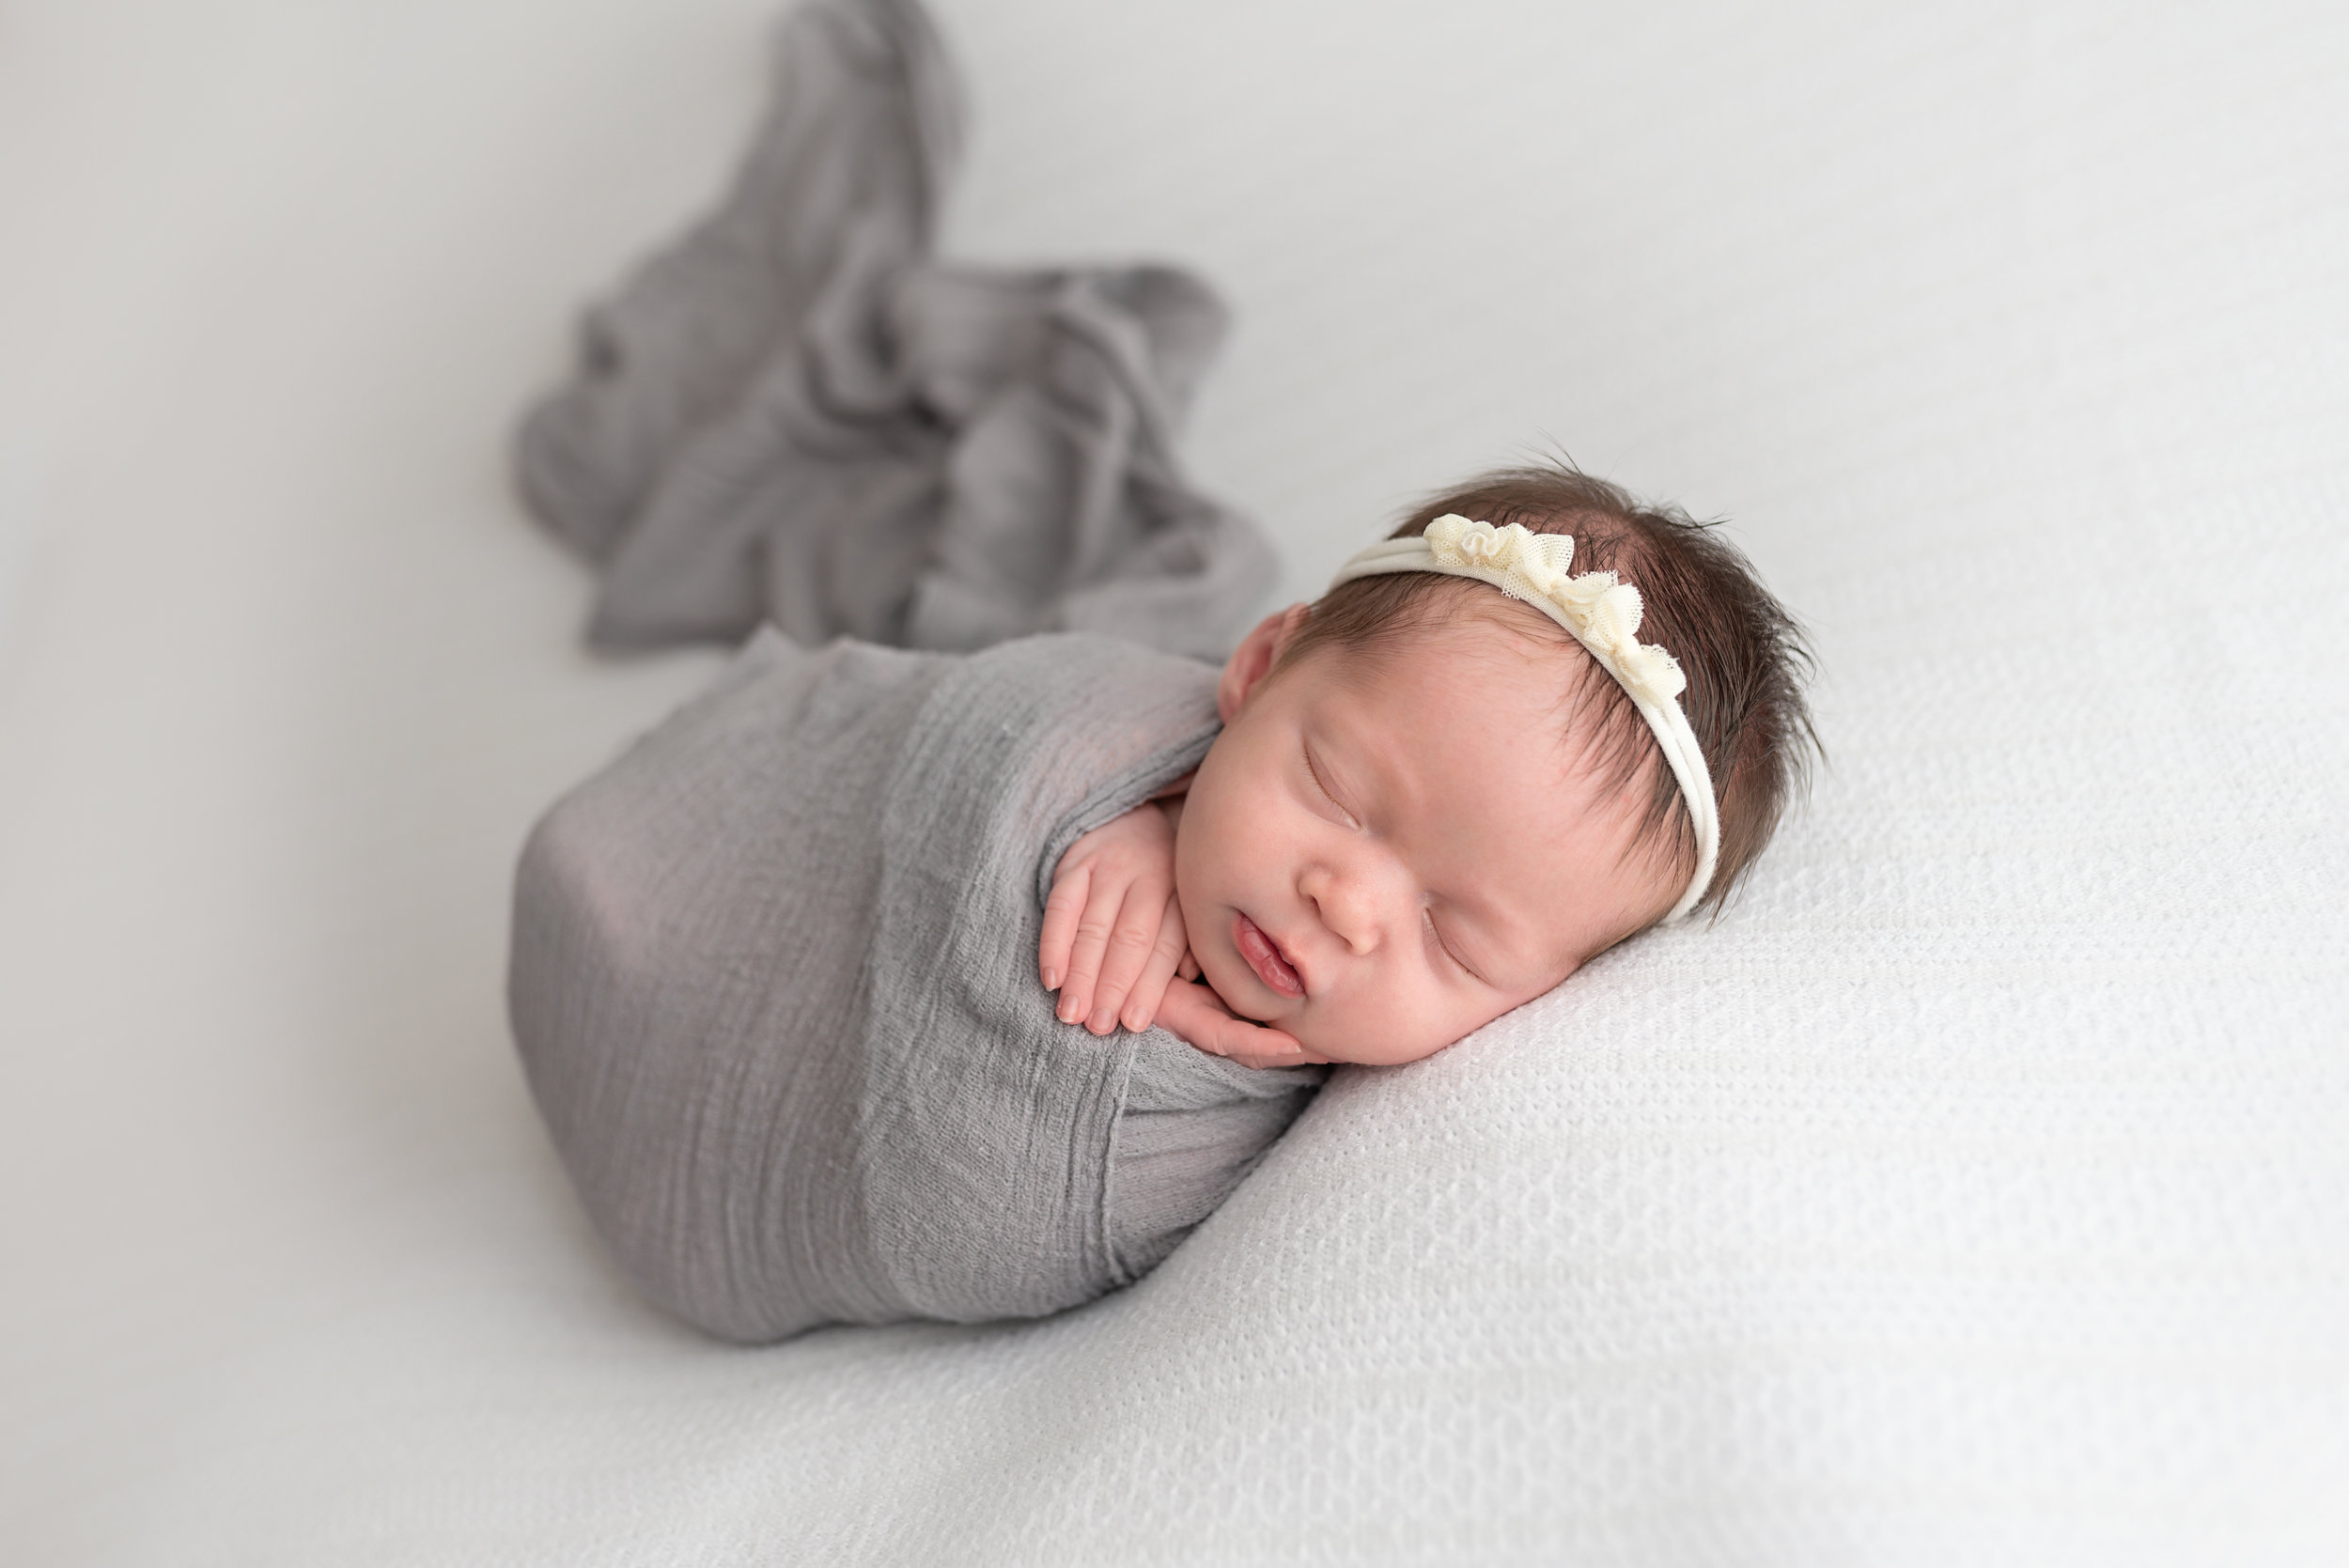 Charleston-Newborn-Photographer-Following-Seas-Photography-FSP_0896 copy.jpg